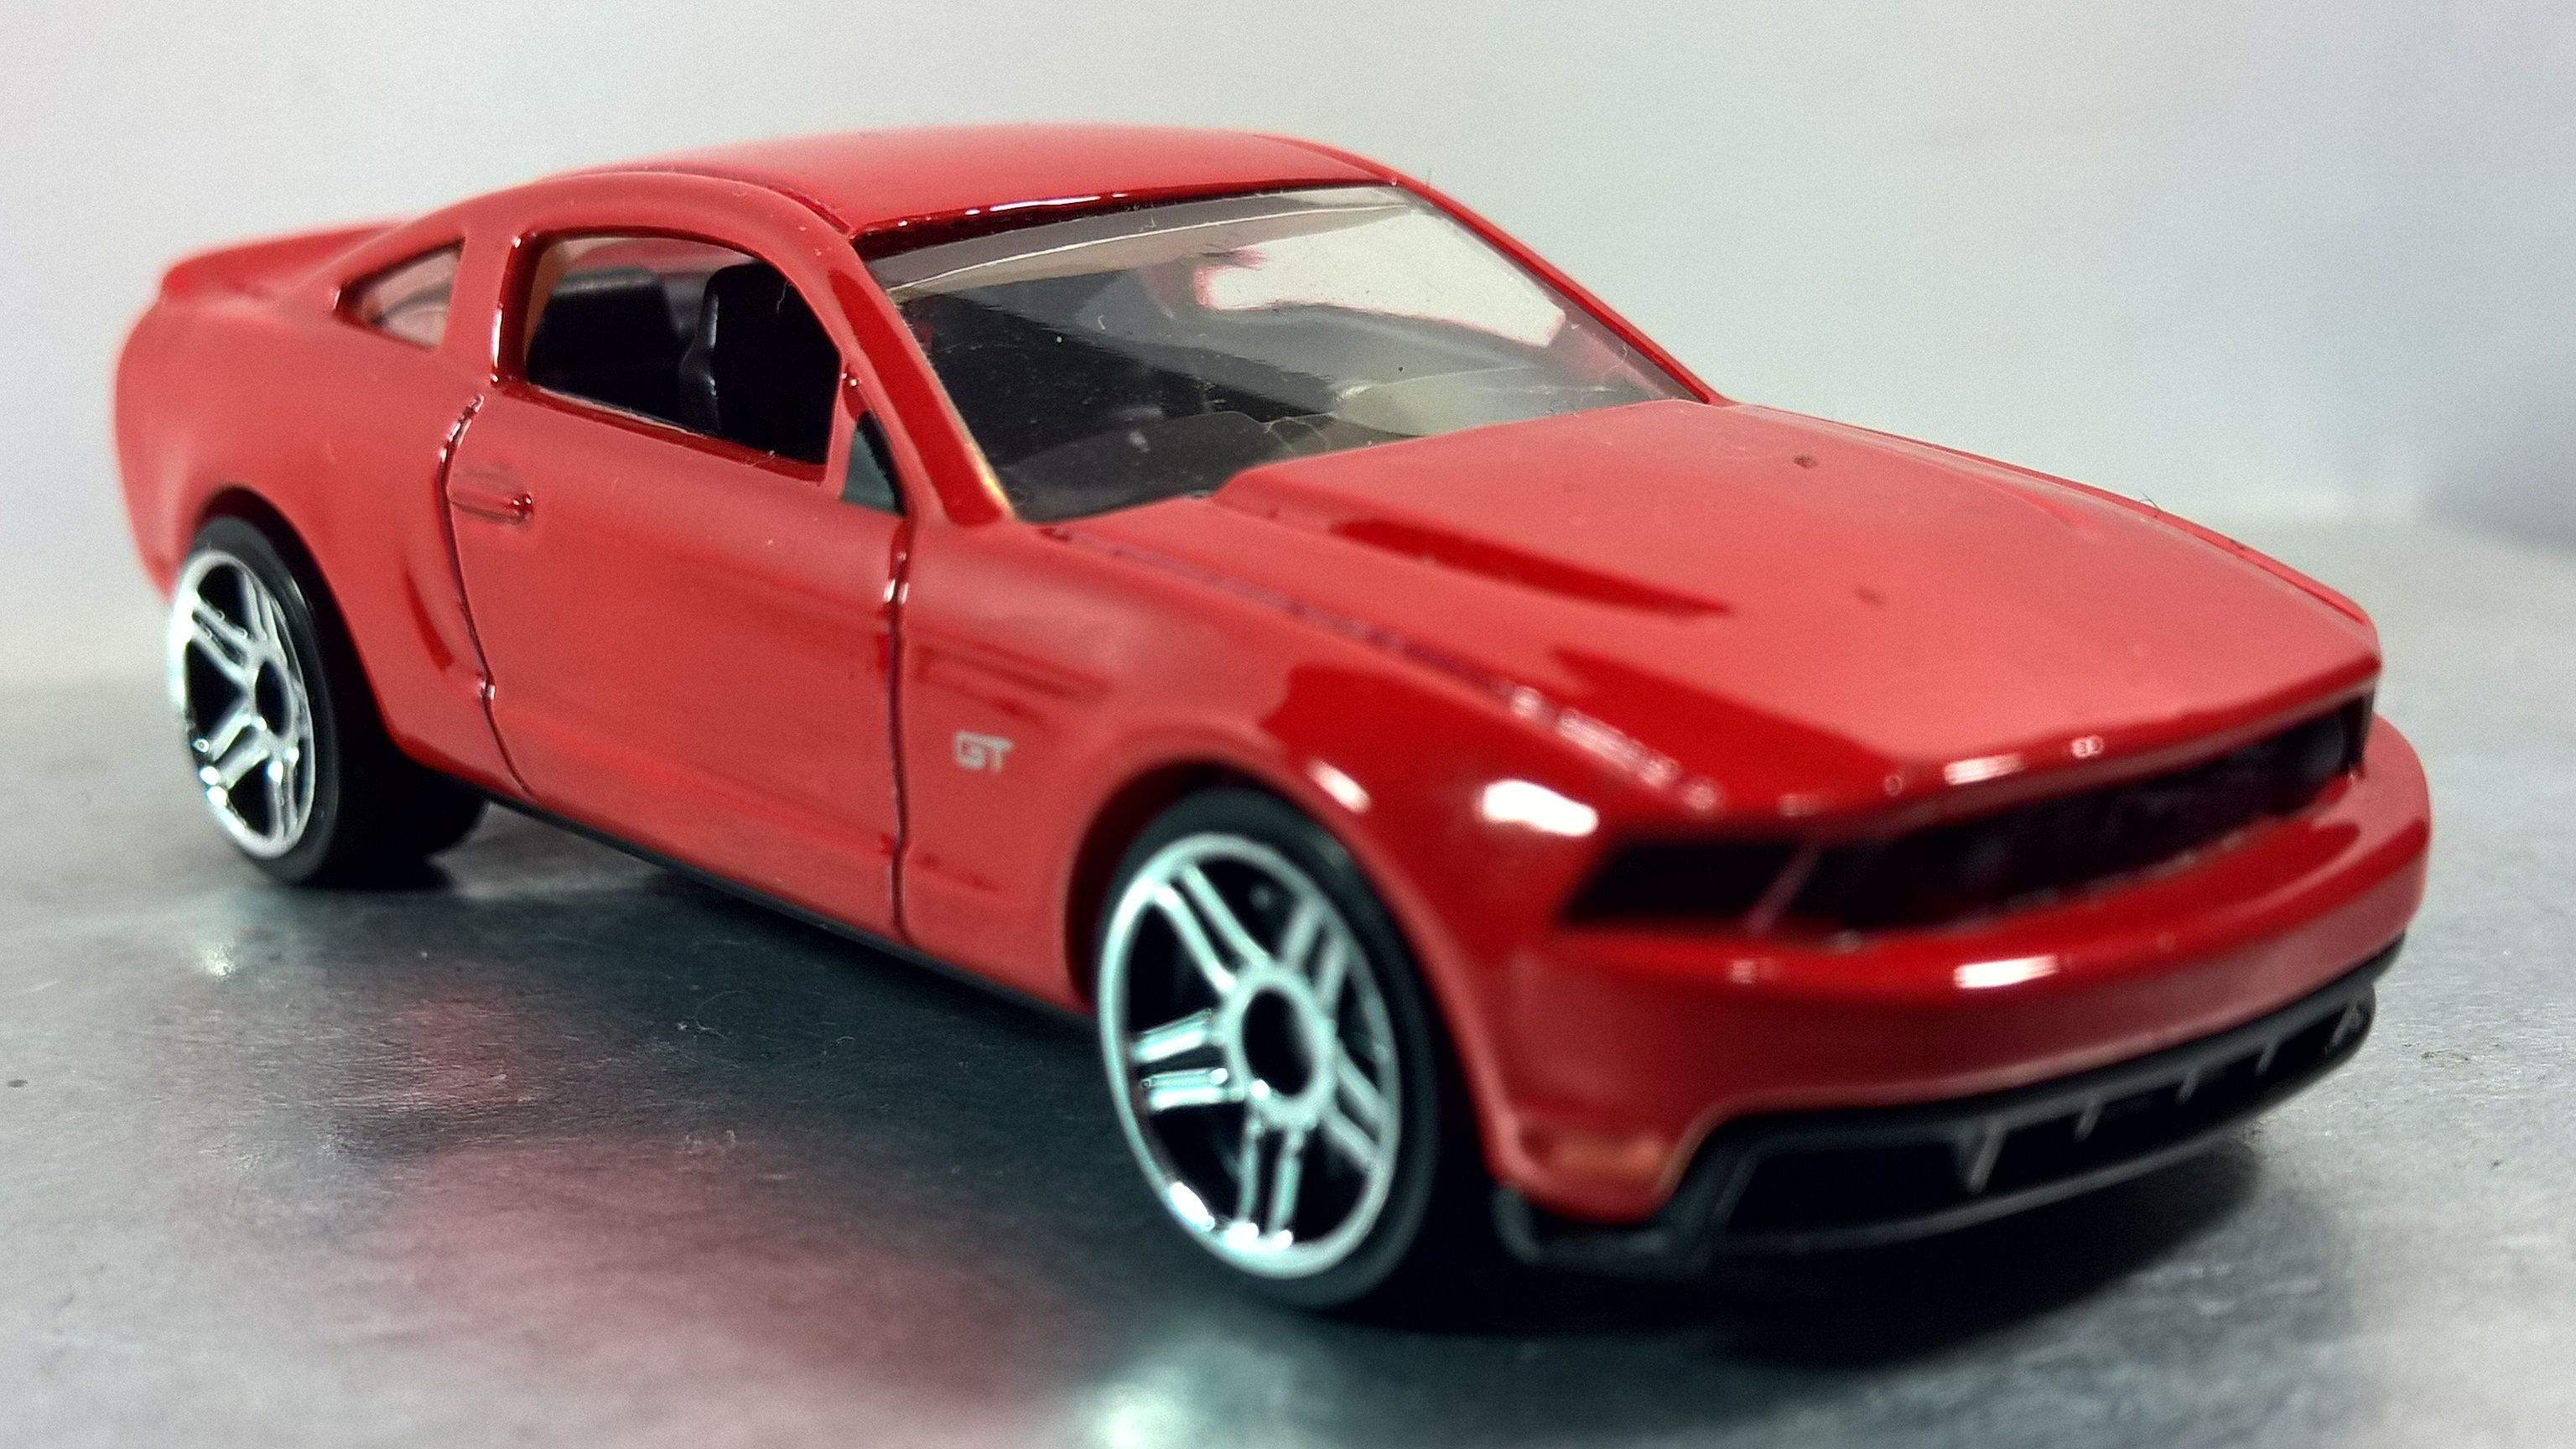 2010 Ford Mustang Gt New Models 2009 7 2010 Ford Mustang Ford Mustang Gt Hot Wheels